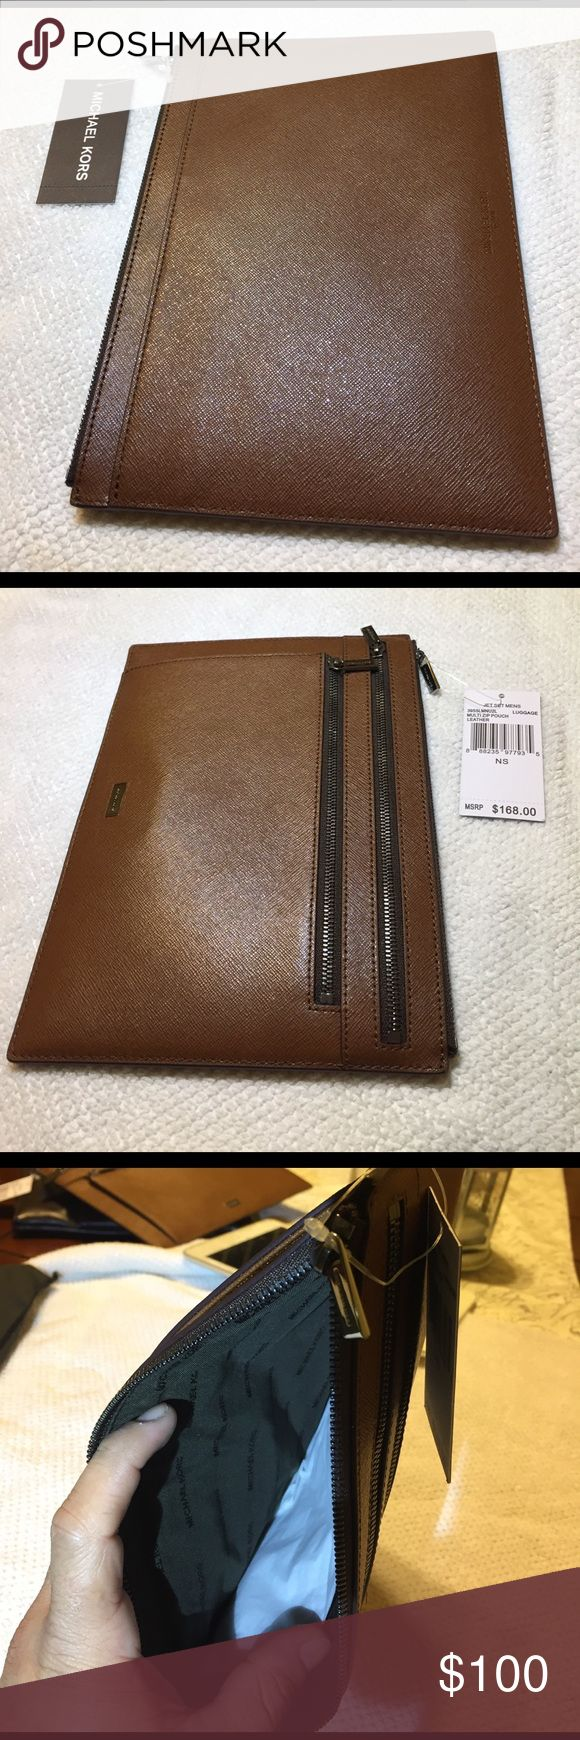 Michael Kors men's Luggage Michael Kors brown jet set men's  multi zip pouch leather MICHAEL Michael Kors Bags Wallets